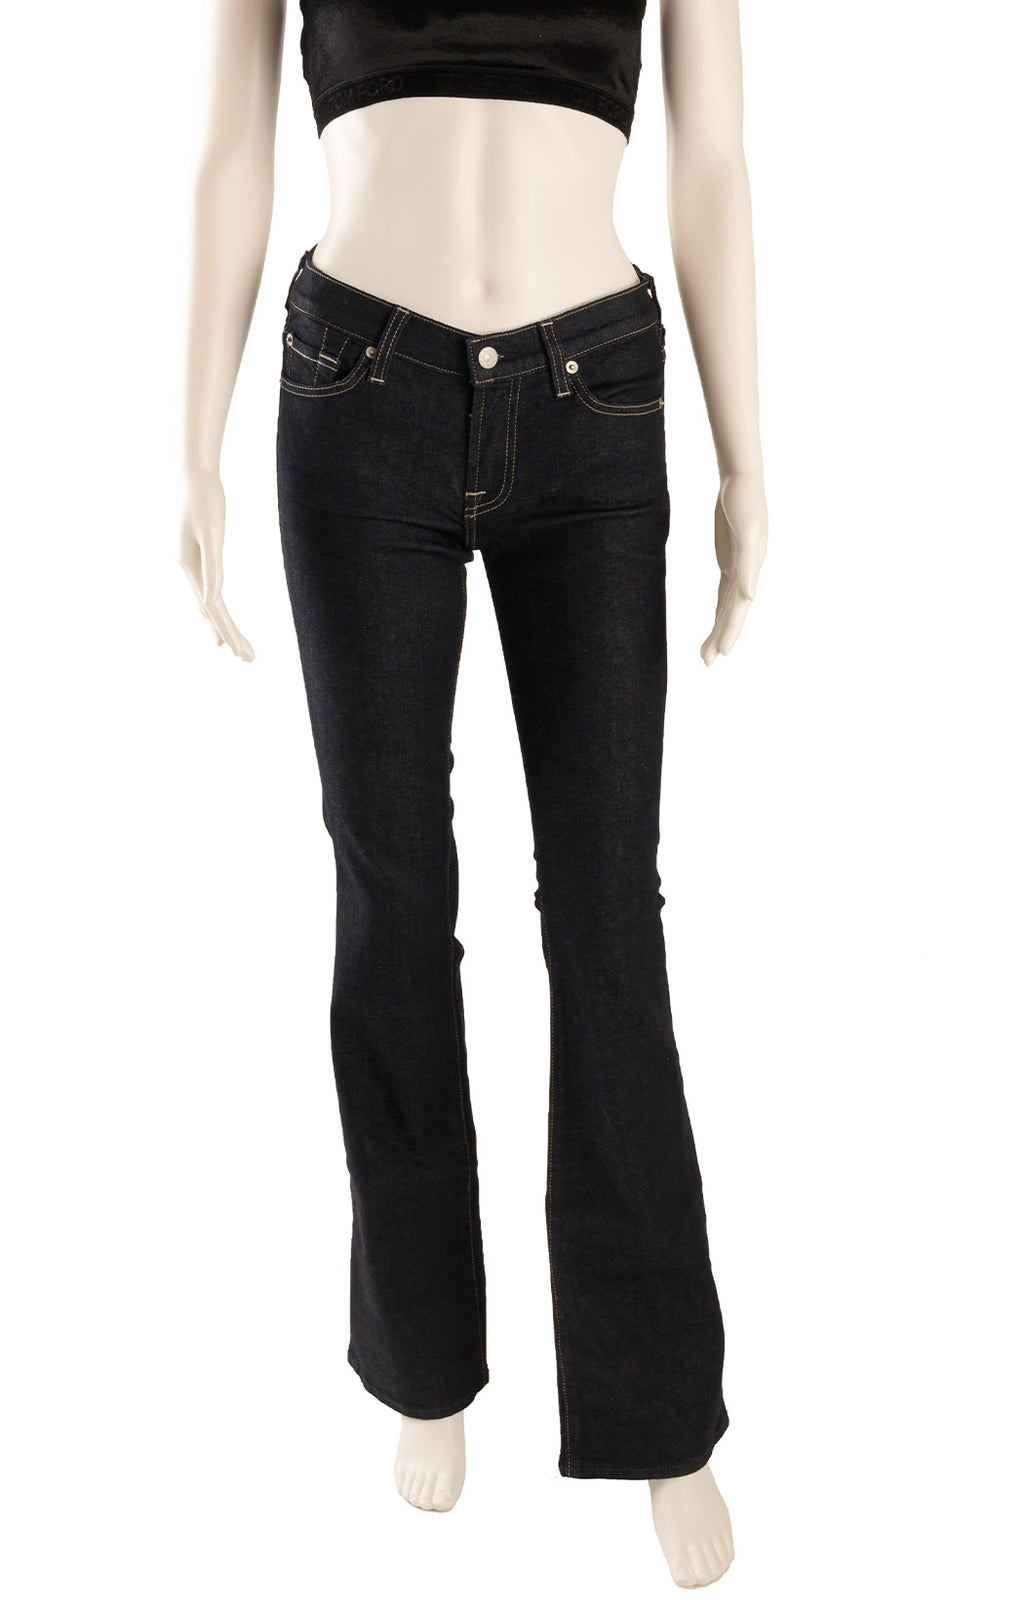 "Front view of 7 FOR ALL MANKIND with tags Jeans Size: 25"" waist"